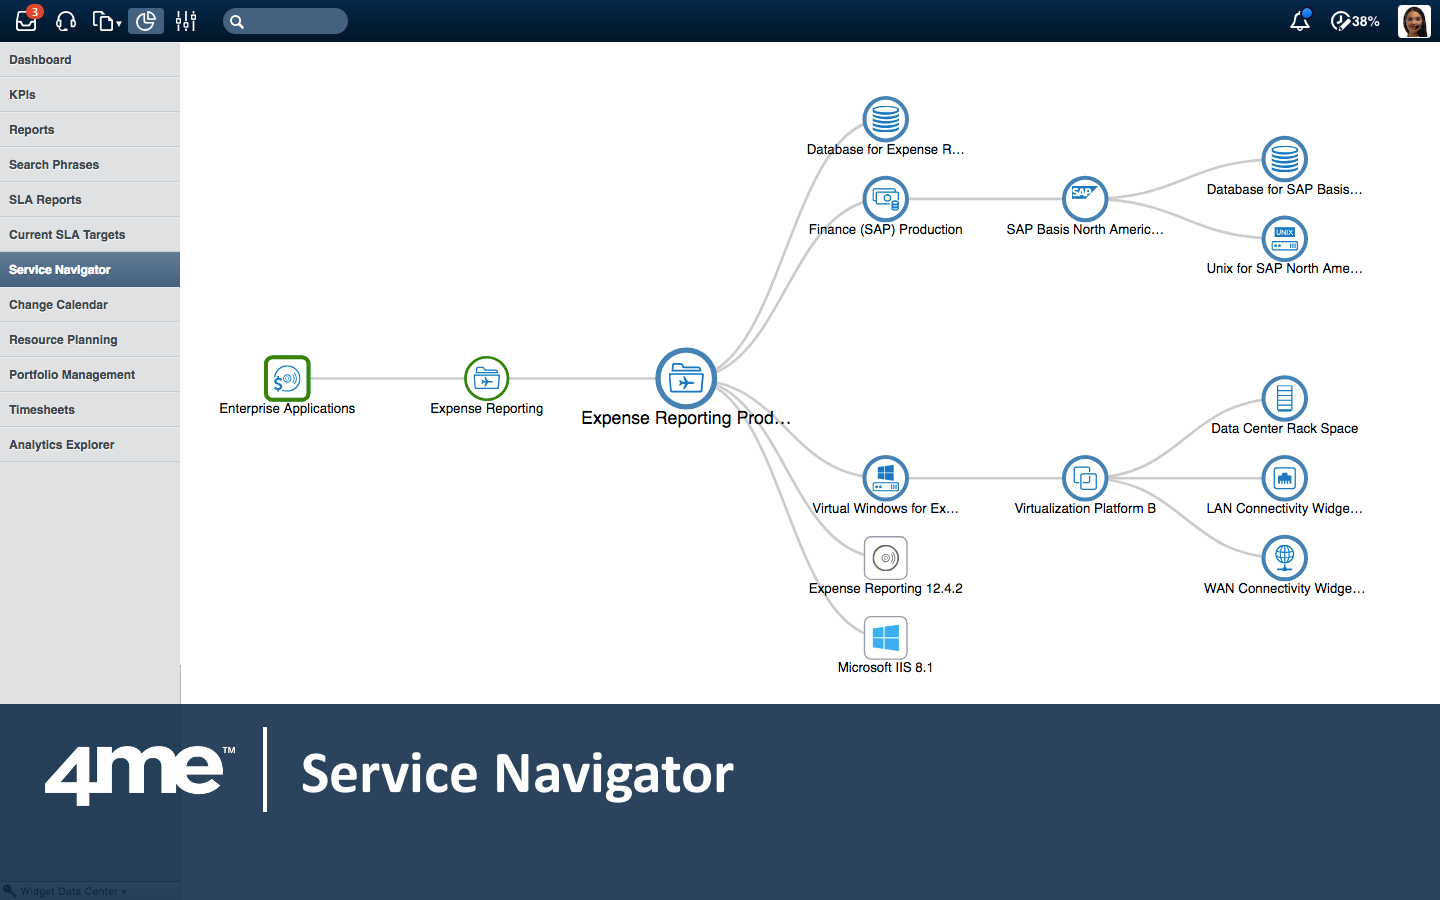 The service navigator provides an easy to understand graphical depiction of the dependencies between services and the configuration items that make up these services.